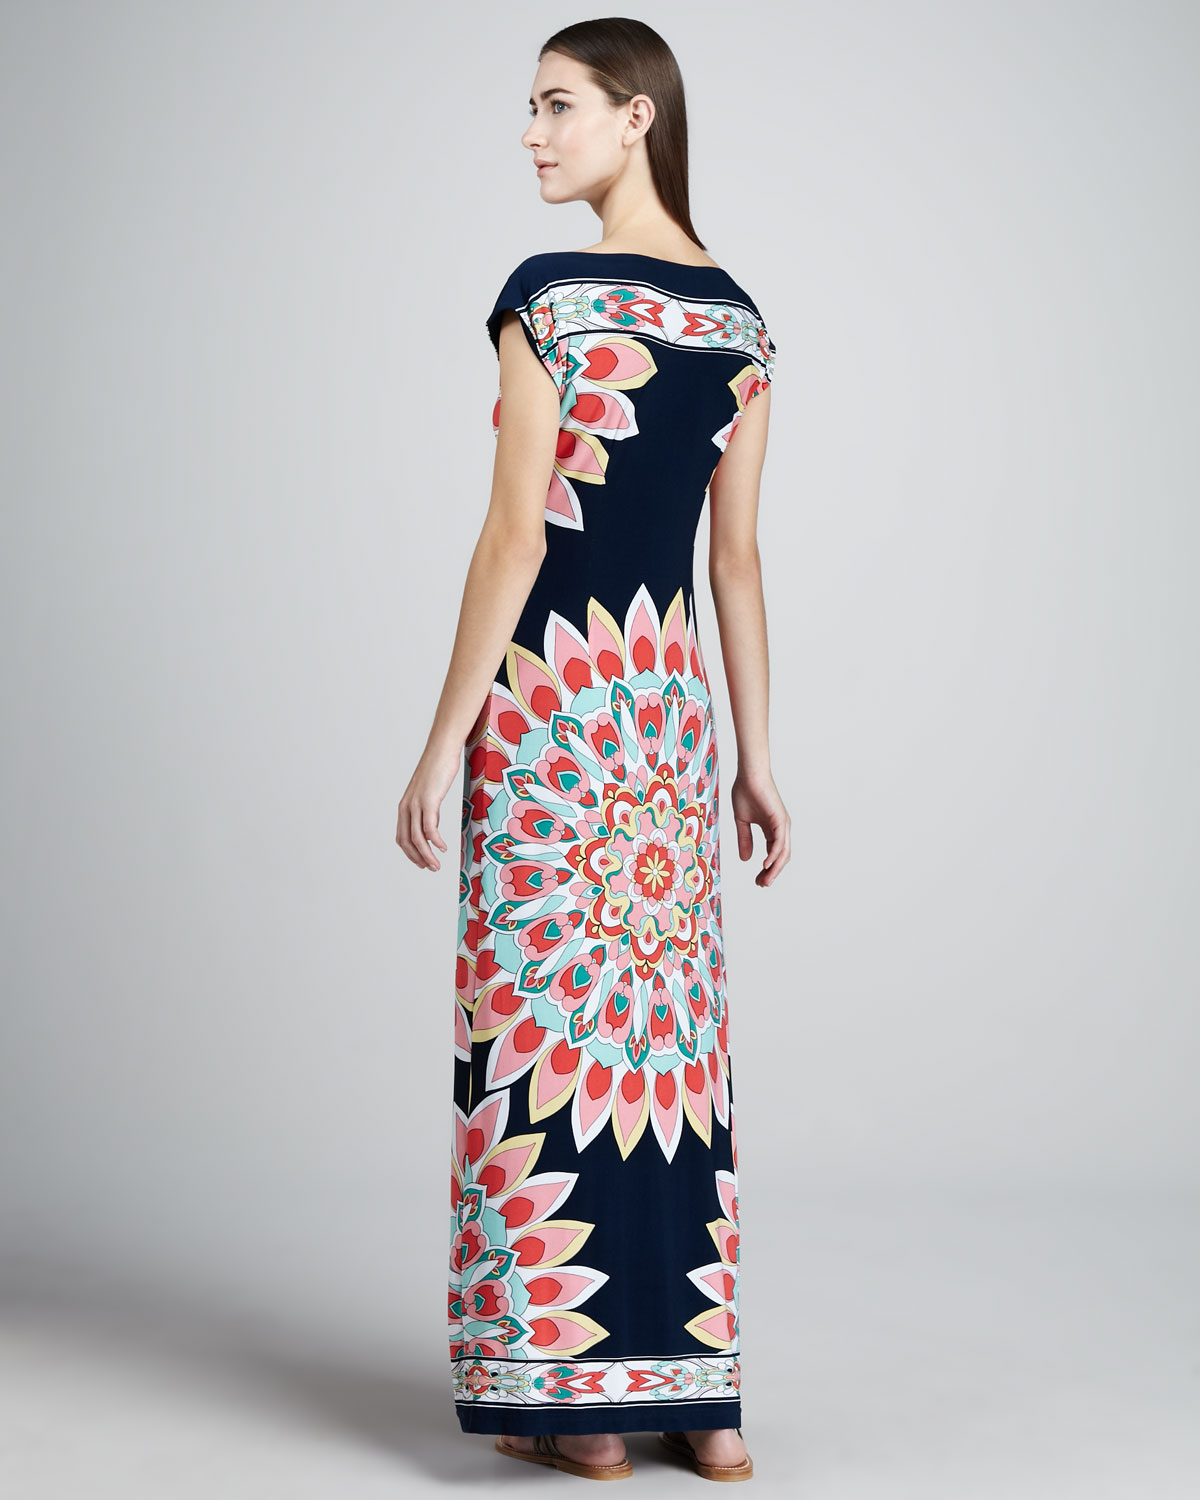 c096f5e91718a Melissa Masse Kaleidoscopeprint Jersey Dress in Blue - Lyst